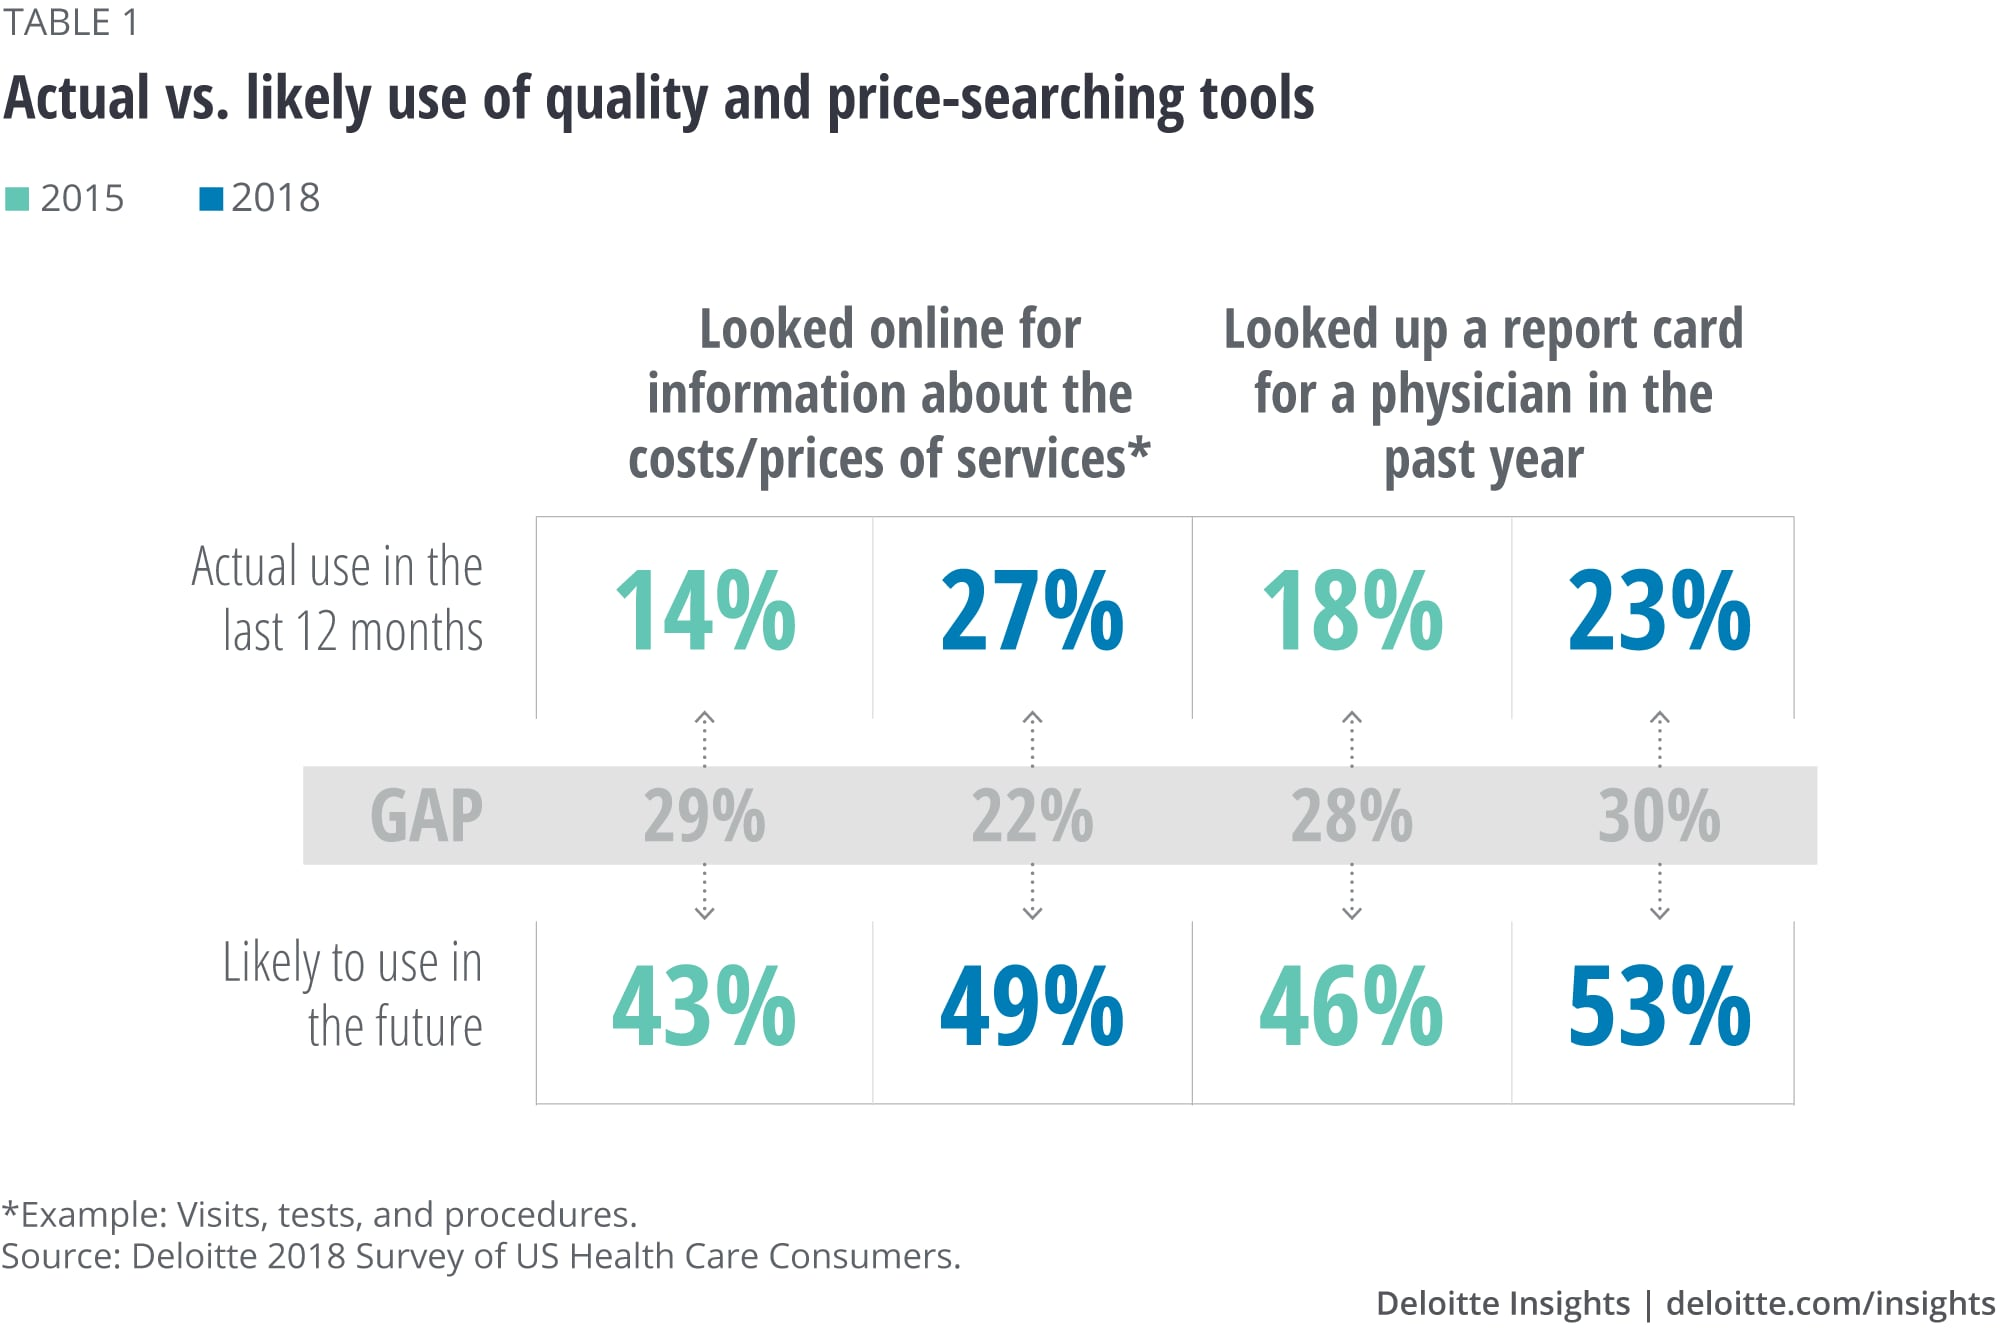 Actual vs. likely use of quality and price-searching tools